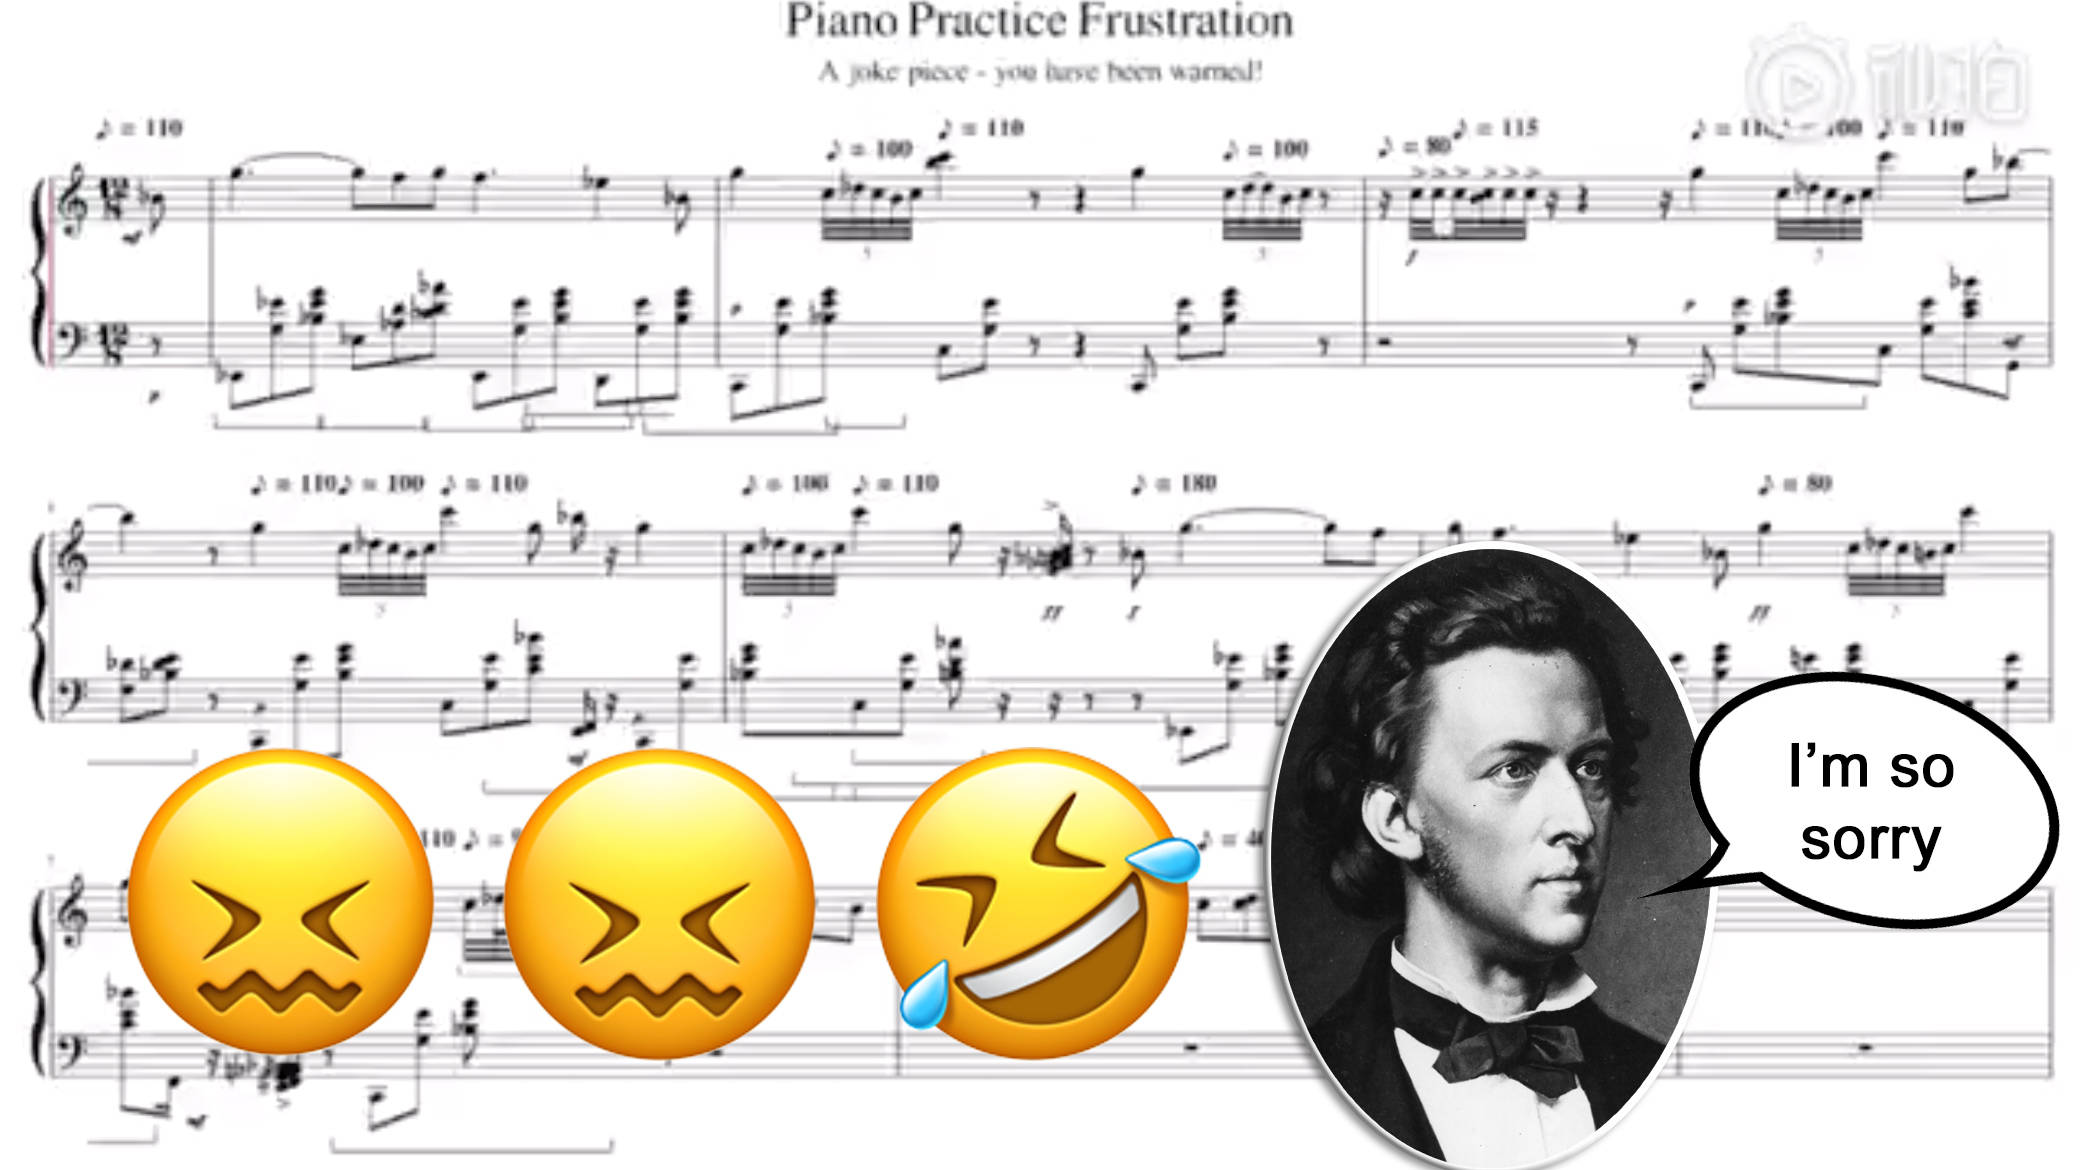 A pianist accurately transcribed their frustrating Chopin practice session.